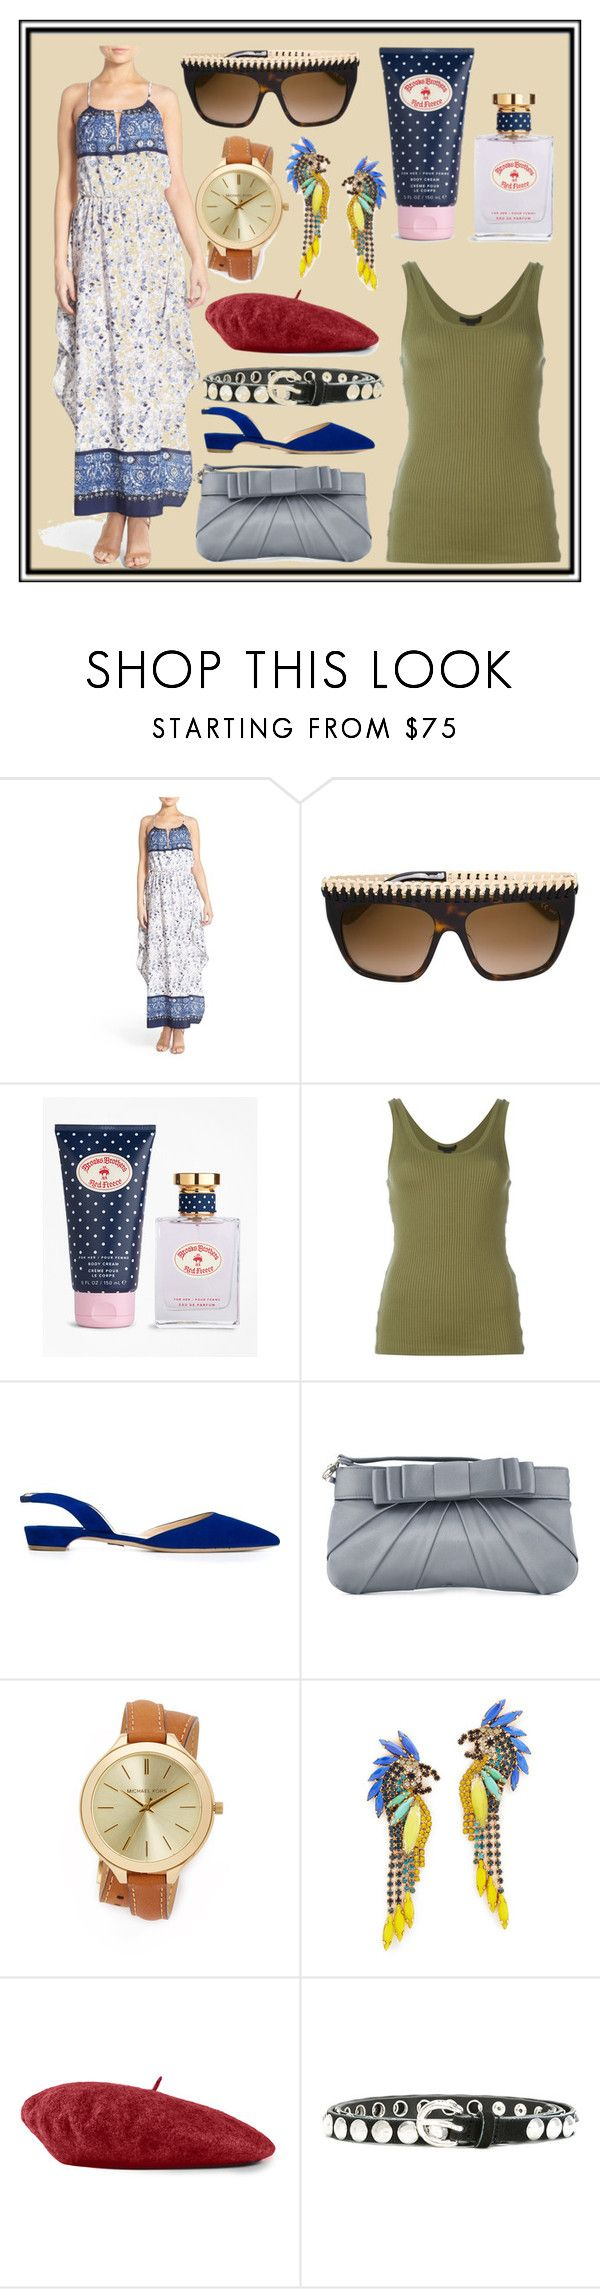 """""""Latest Trends"""" by cate-jennifer ❤ liked on Polyvore featuring Fraiche By J, STELLA McCARTNEY, Brooks Brothers, Alexander Wang, Paul Andrew, Love Moschino, Michael Kors, Elizabeth Cole, Gucci and Diesel"""